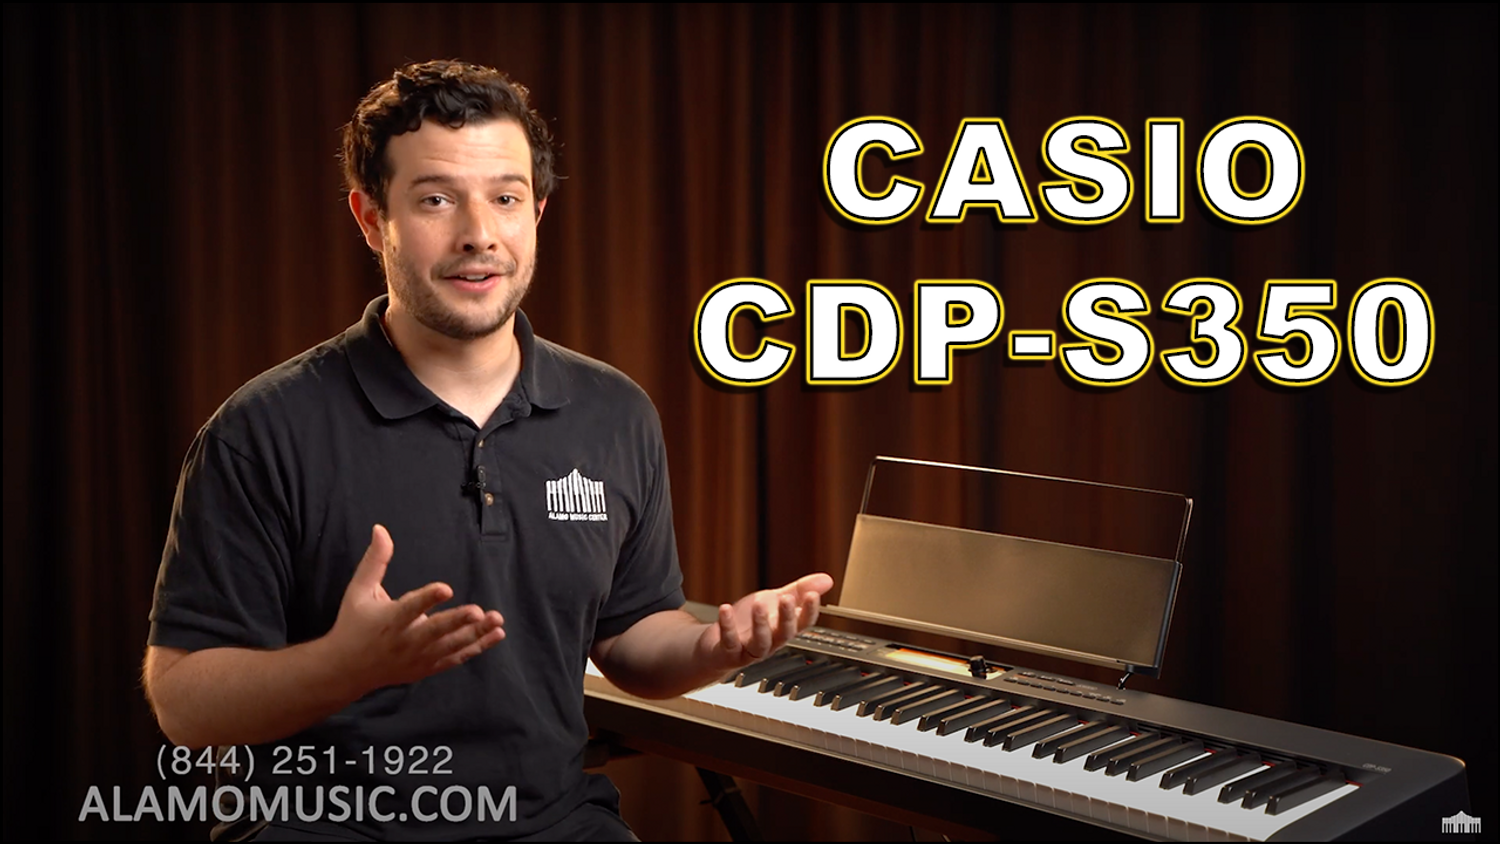 Casio CDP-S350 Keyboard Review - Best Weighted Keyboard under $600? - Packed with Sounds & Features